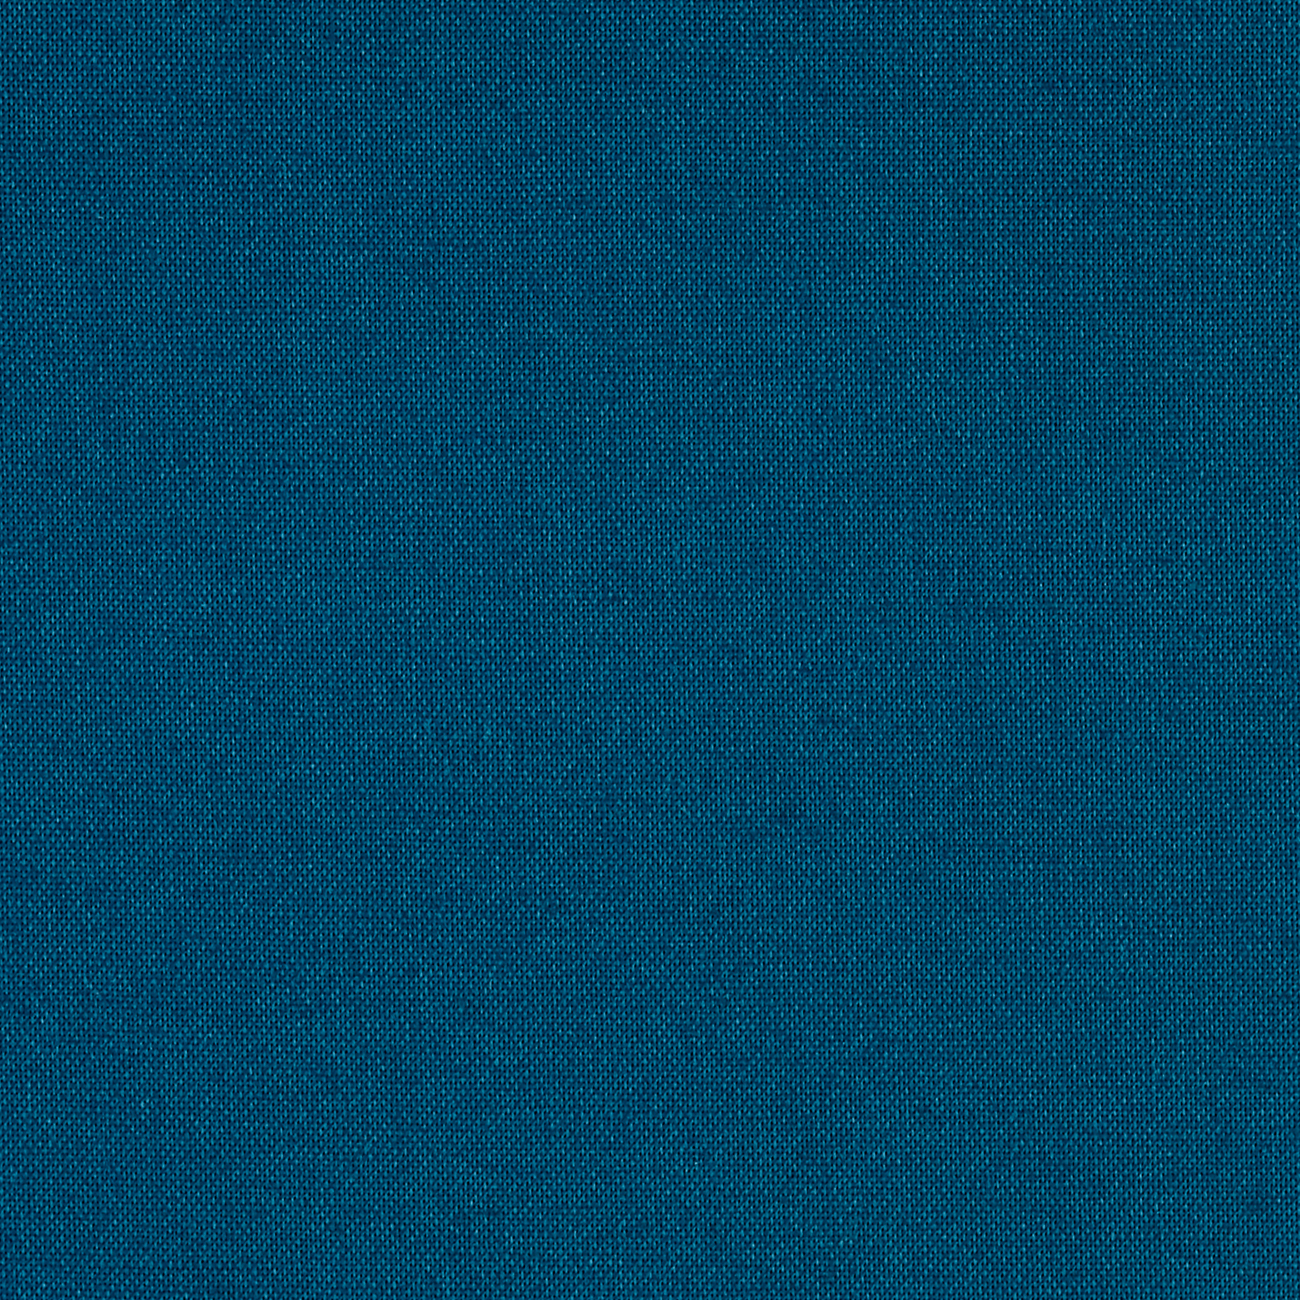 Kona Cotton Teal Blue Fabric